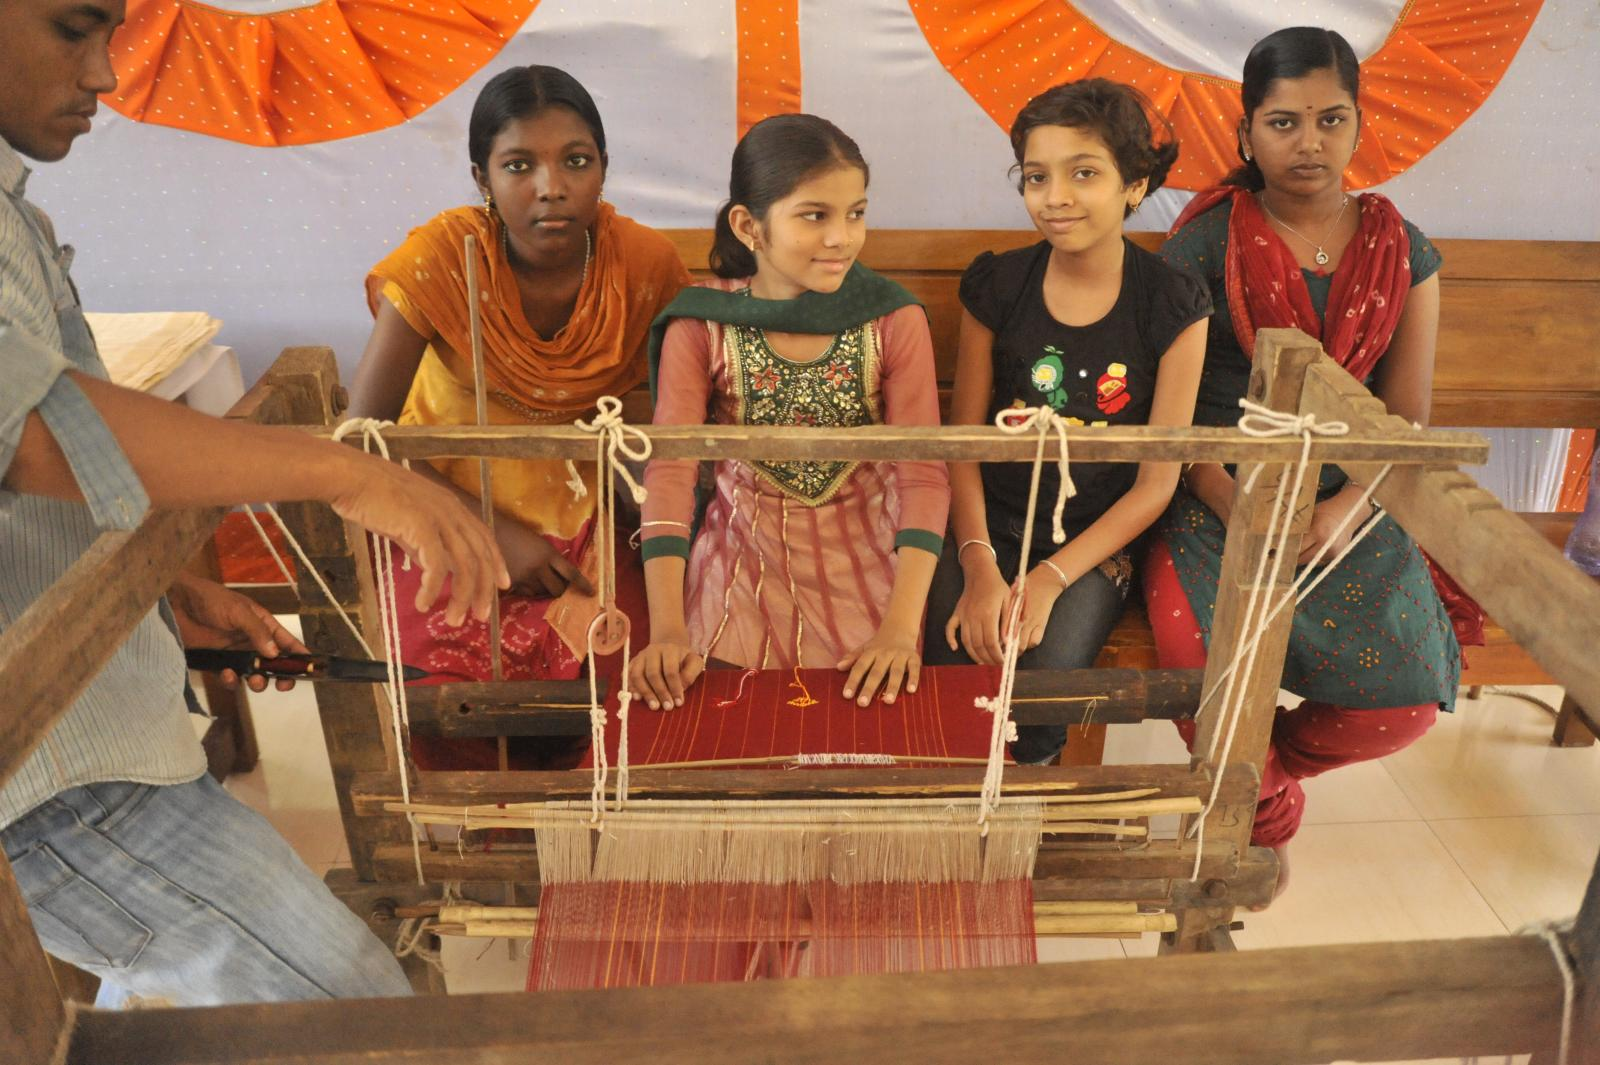 On their way to finishing their dupatta...weaving from Assam